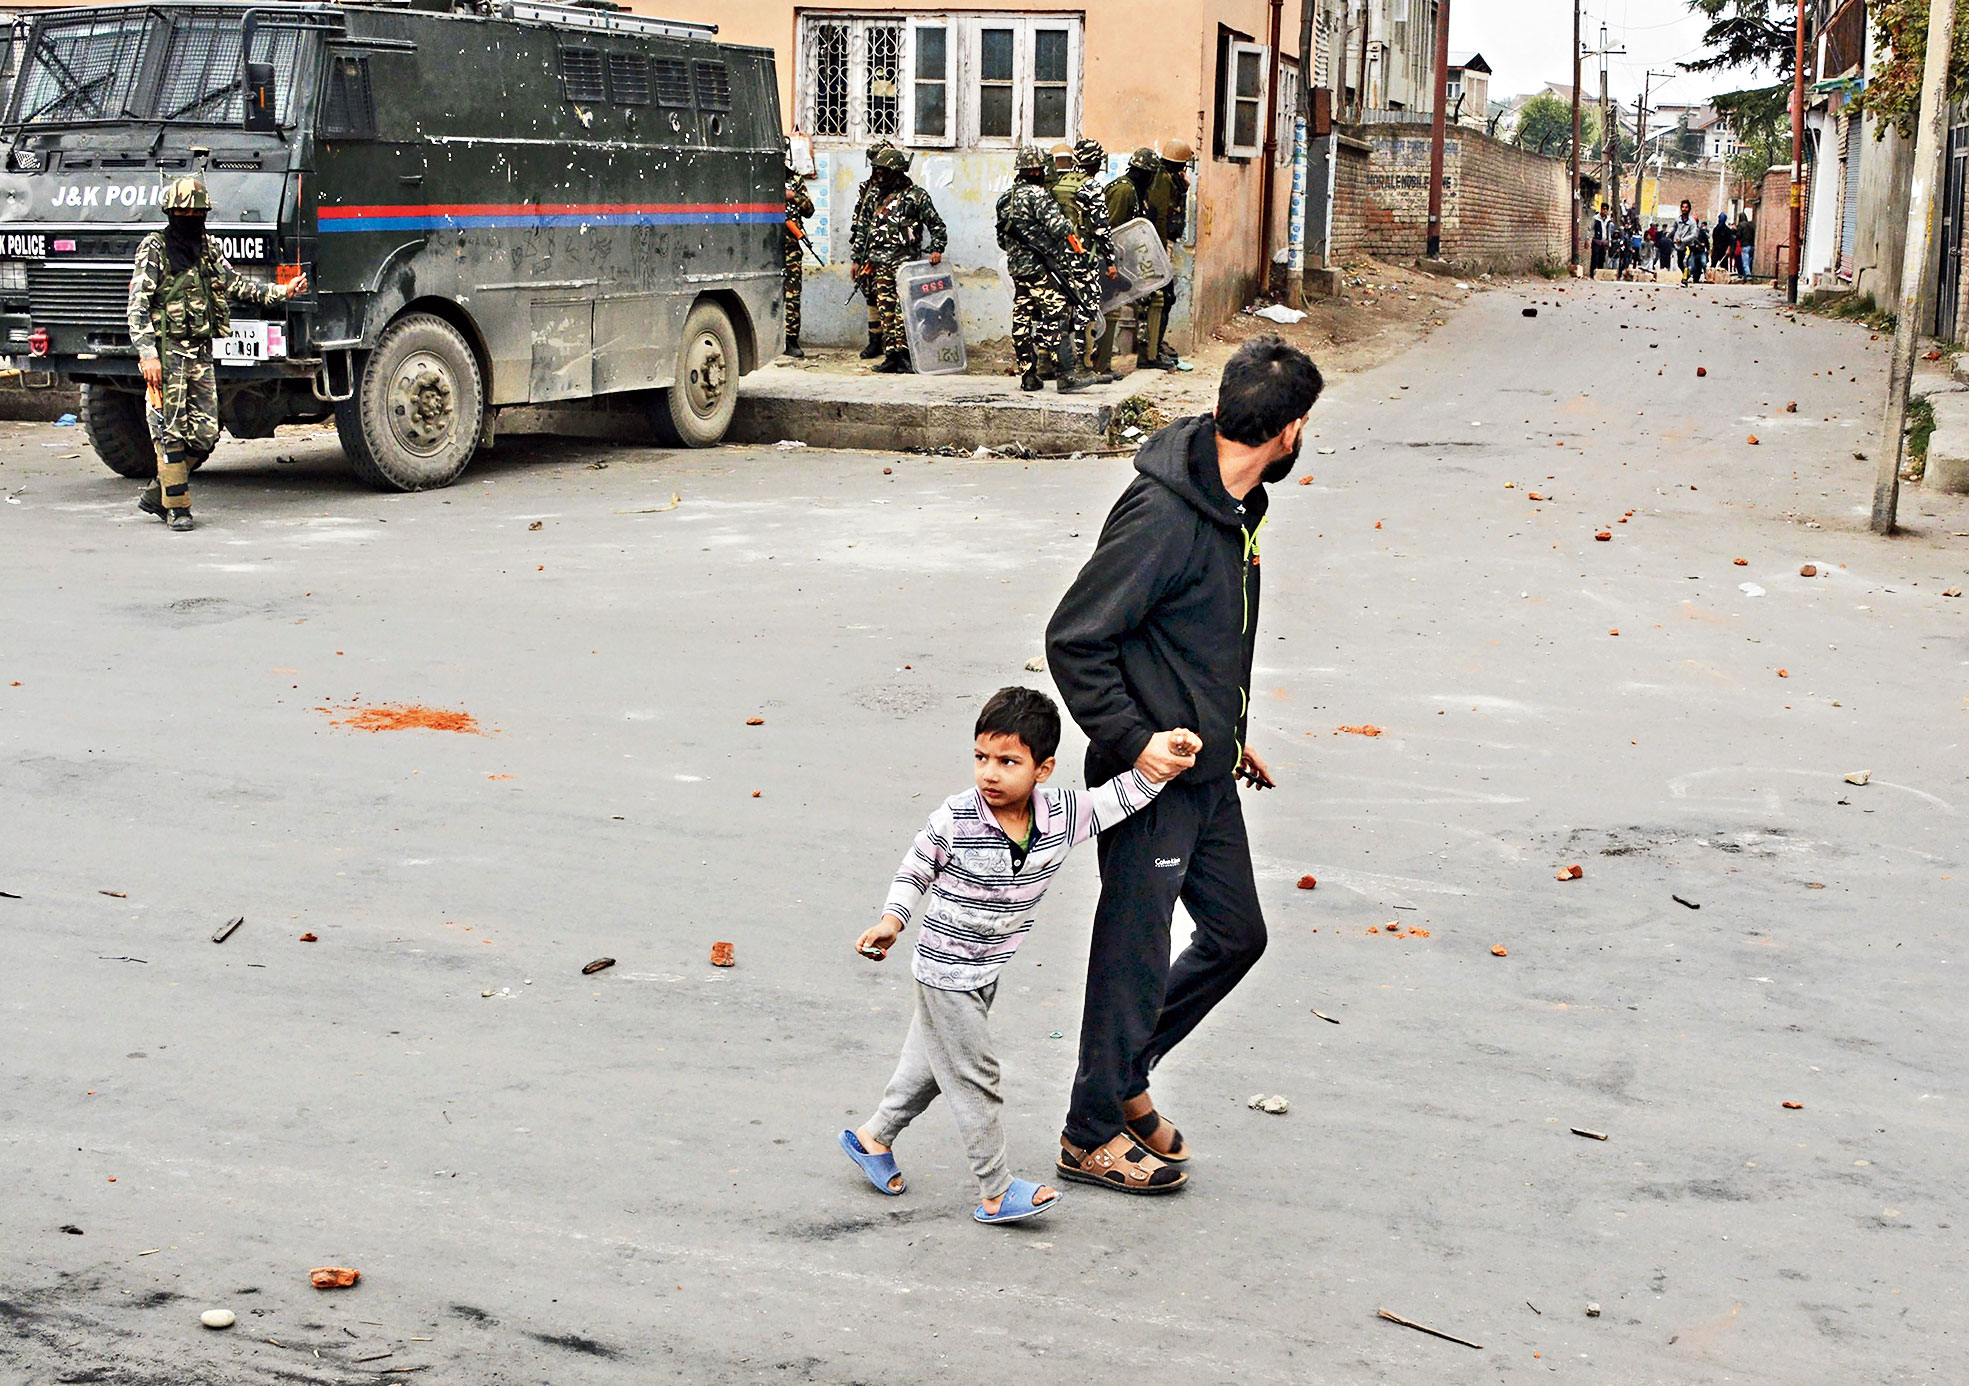 A man and a child run for cover during a clash near a polling station in Srinagar on Tuesday.